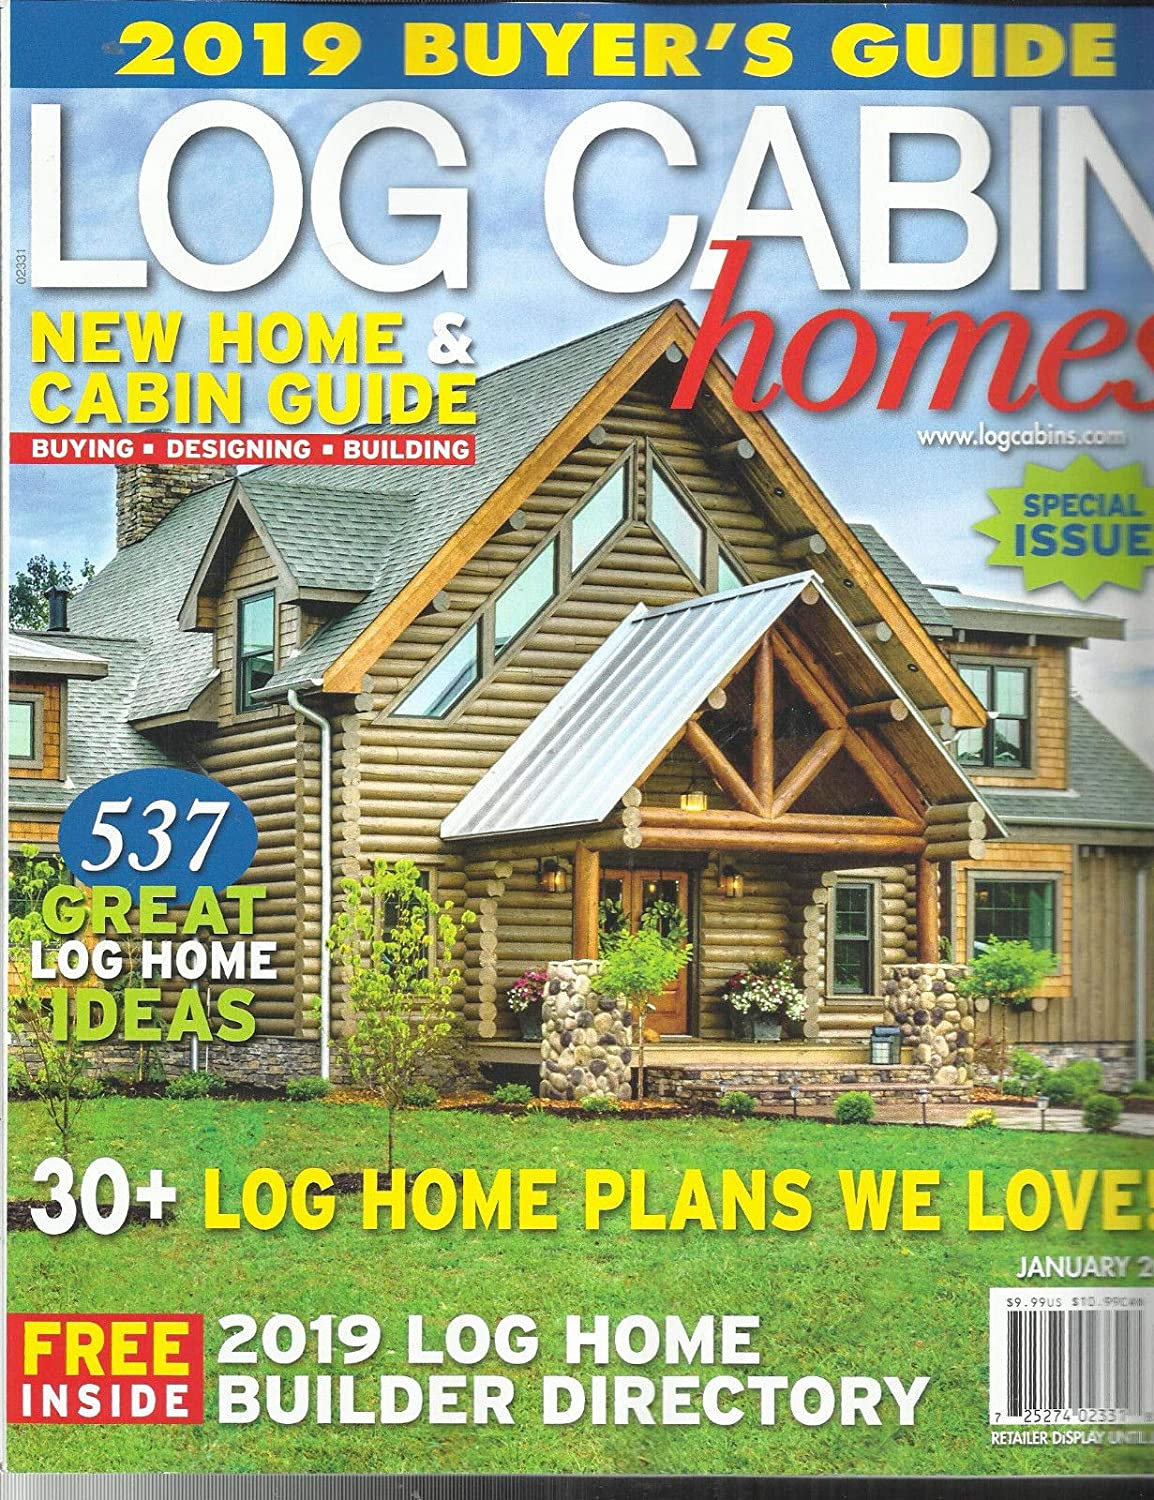 LOG CABIN HOMES MAGAZINE, 2019 BUYER'S GUIDE NEW HOME & CABIN GUIDE JAN, 2019 2019 BUYER' S GUIDE NEW HOME & CABIN GUIDE JAN s3457